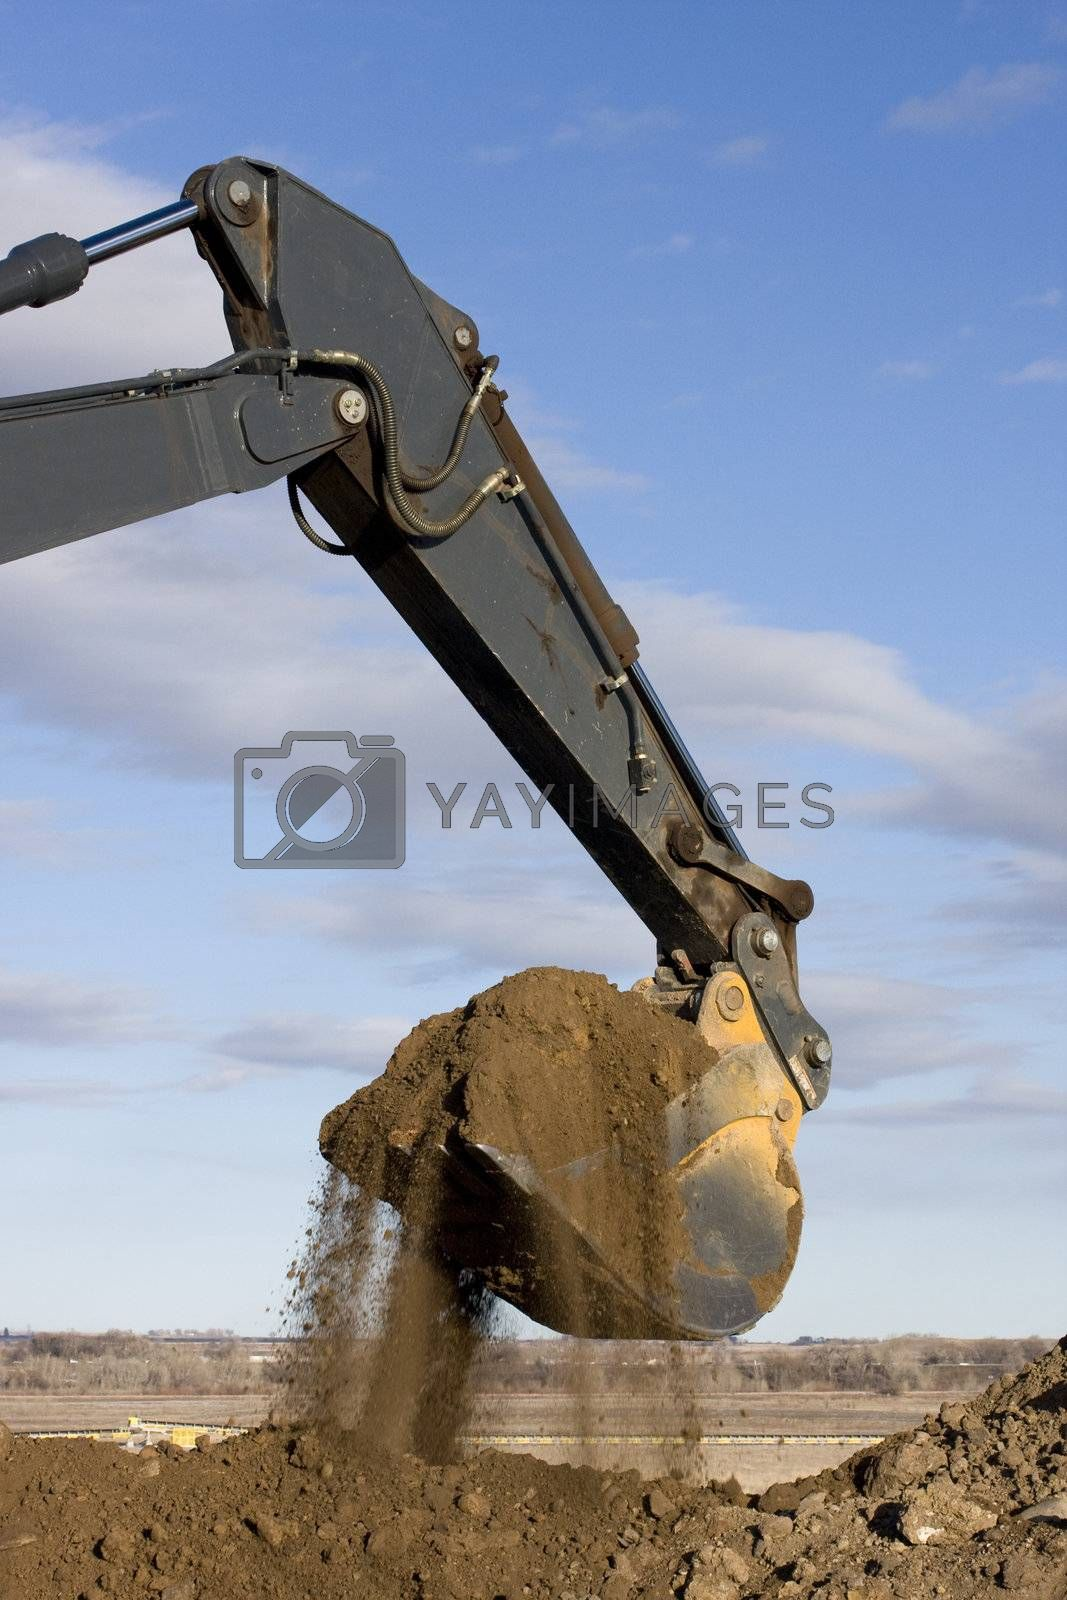 Excavator arm and scoop digging dirt at road construction by PixelsAway